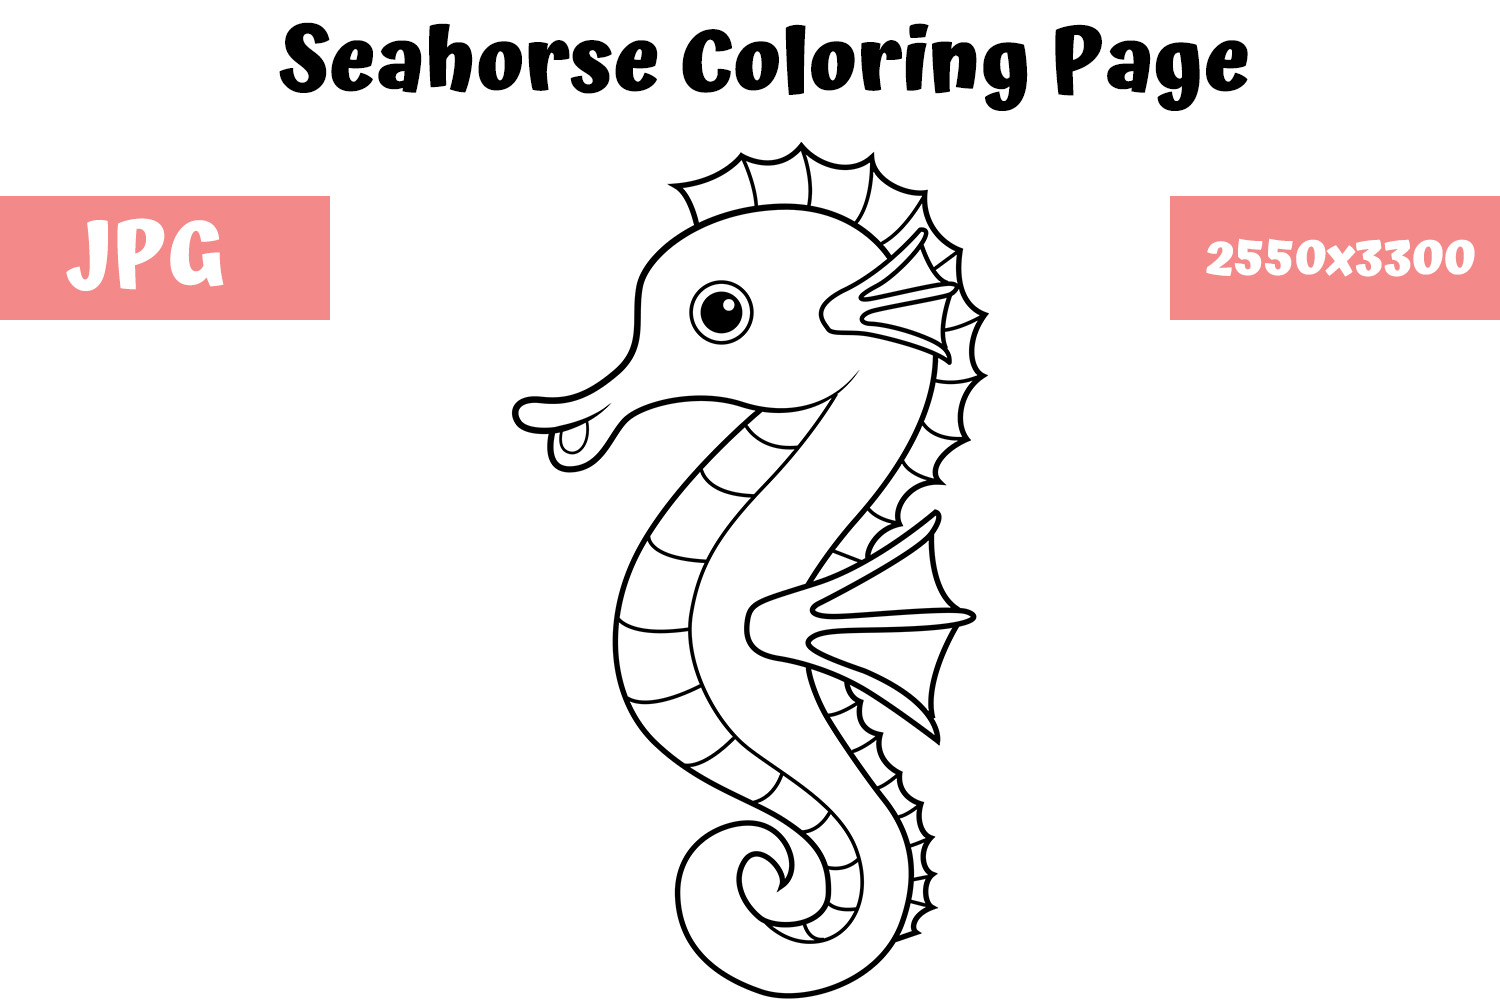 - Coloring Book Page For Kids - Seahorse (Graphic) By